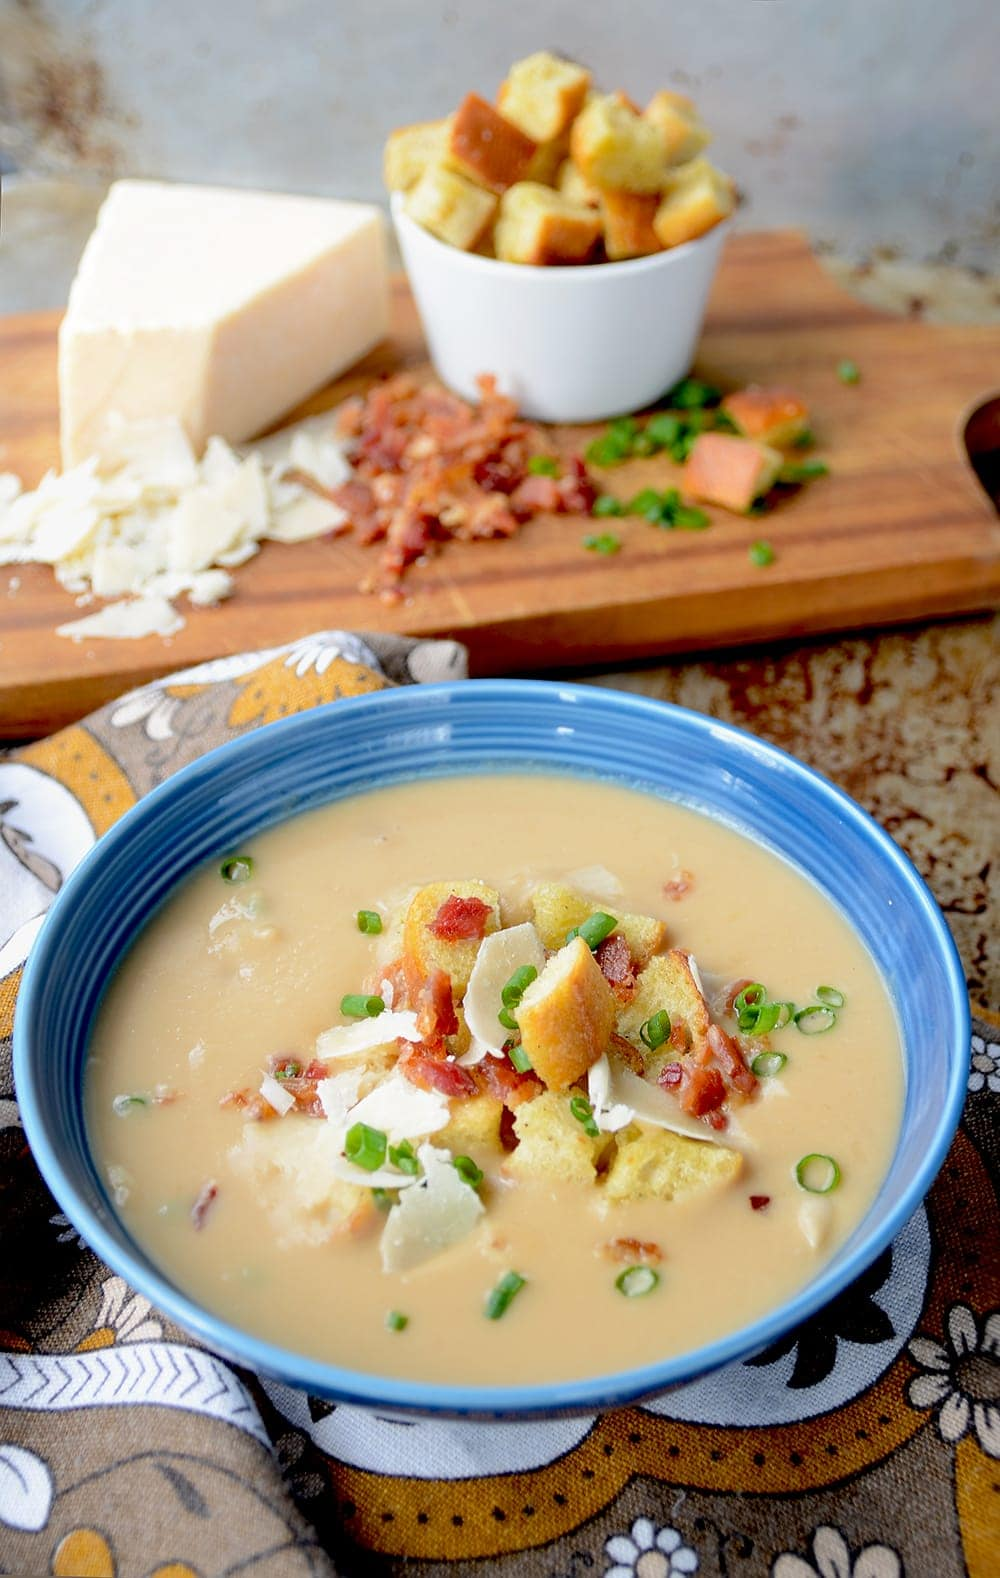 Celery Root and White Bean Soup is a hearty, pureed soup perfect for a chilly winter meal. Hot soup that's rich and creamy? Sounds like a great way to beat old man winter at his game! | vintagekitty.com